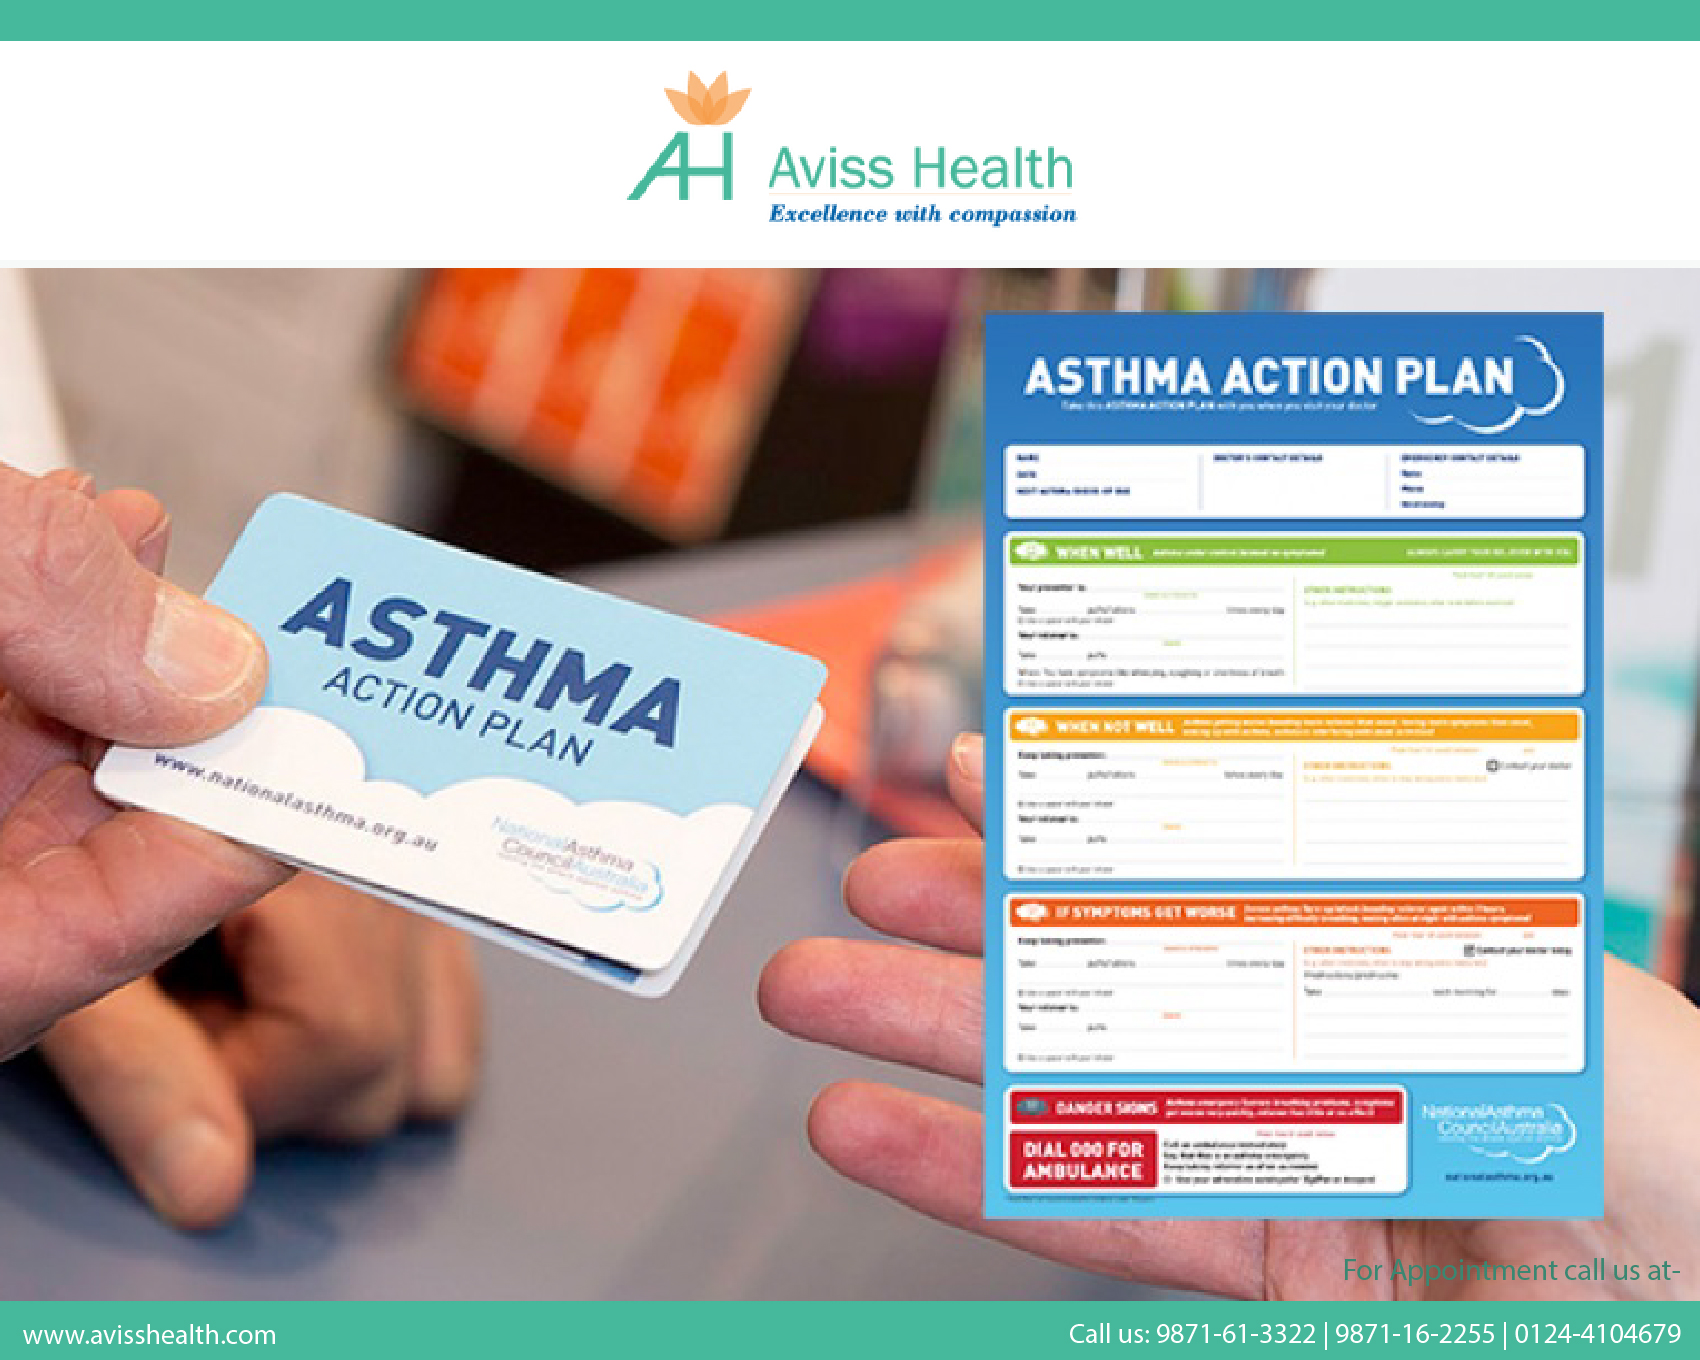 Why should asthma patients maintain a written action plan?